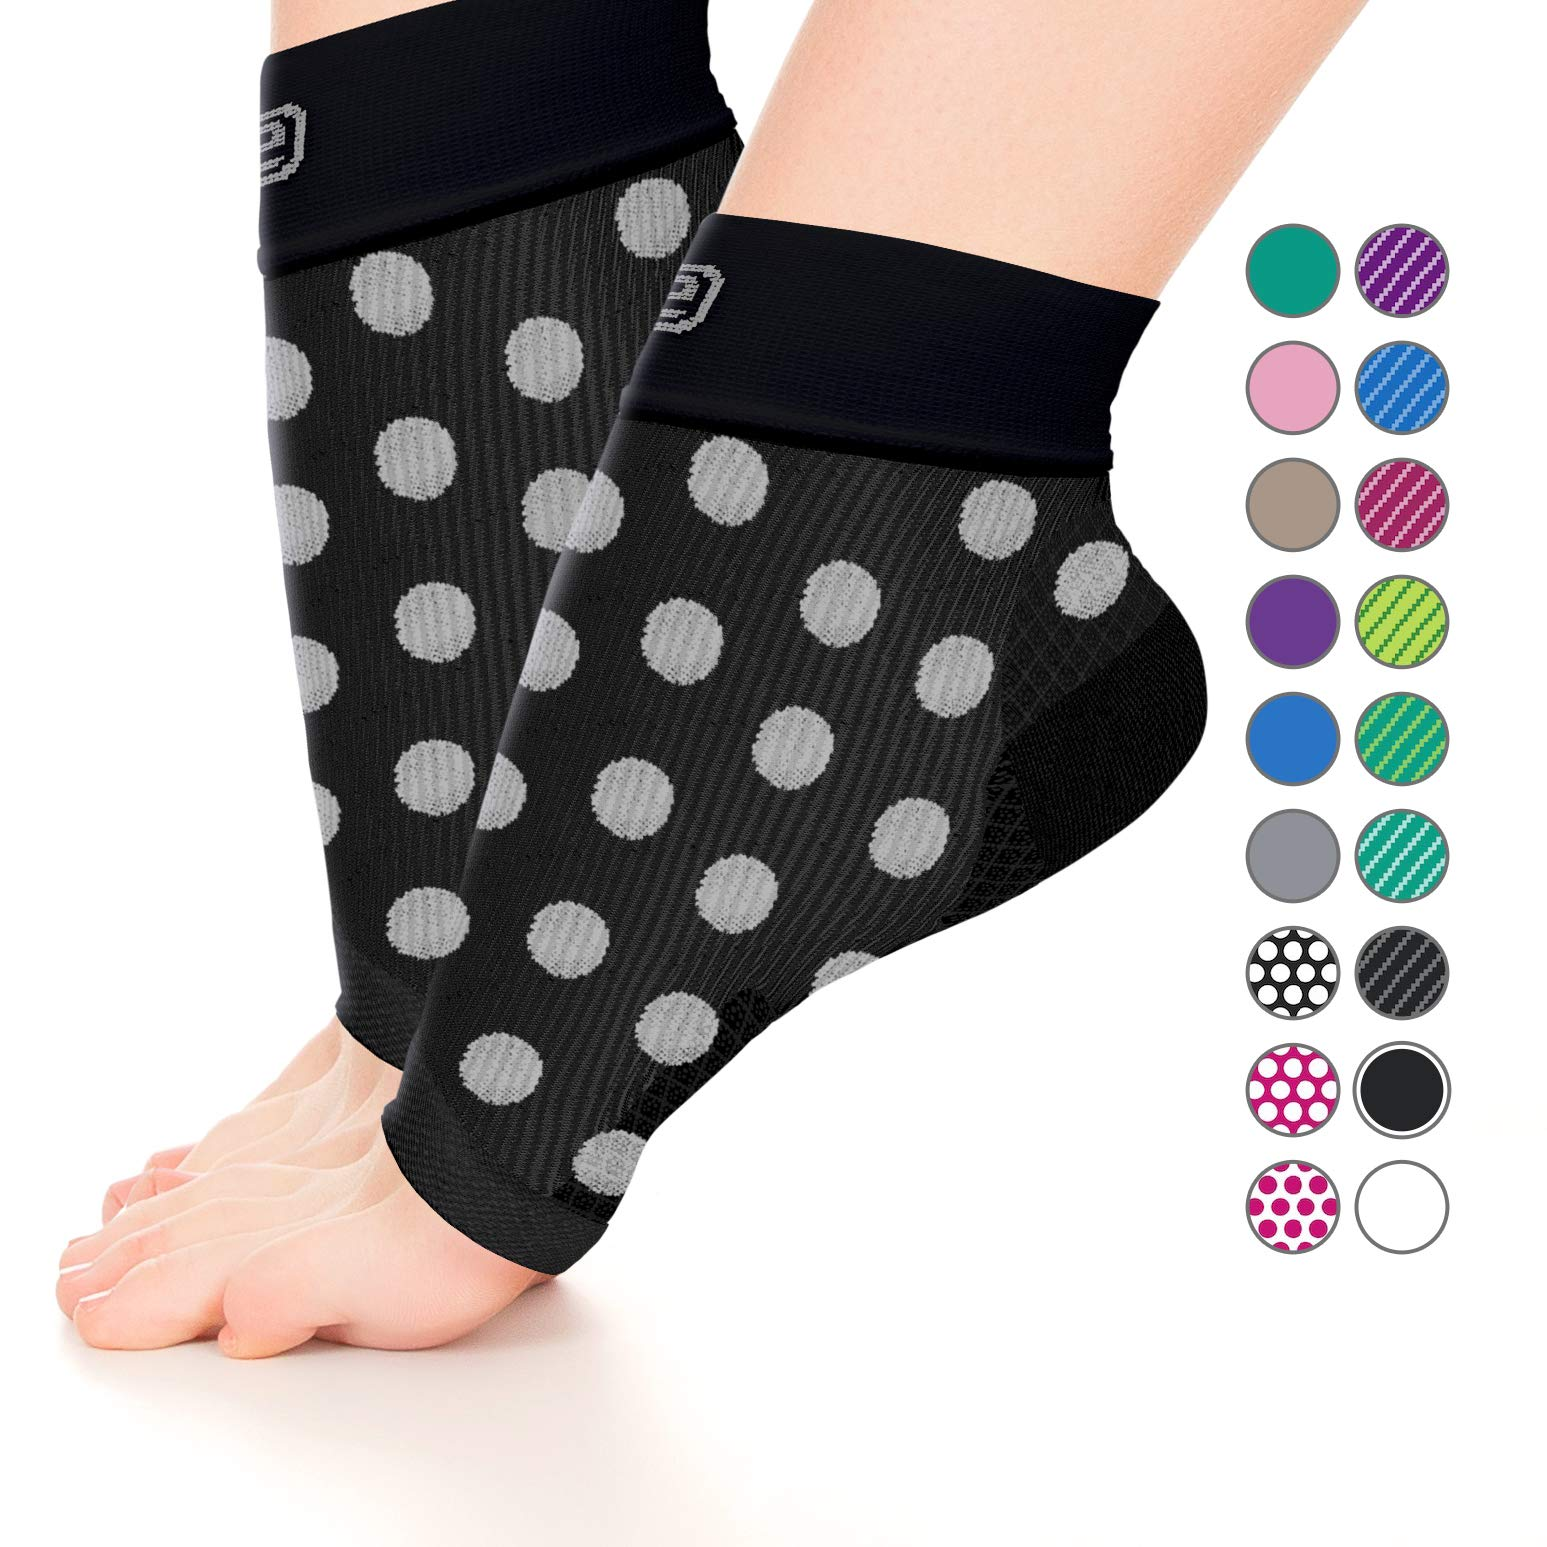 Plantar Fasciitis Sock,Compression Socks for Men Women-Best Ankle Sleeve for Arch Support,Injury Recovery and Prevention-Relief from Joint and Foot Pain,Swelling,Achy Feet (Black W/Large White Dots,M)